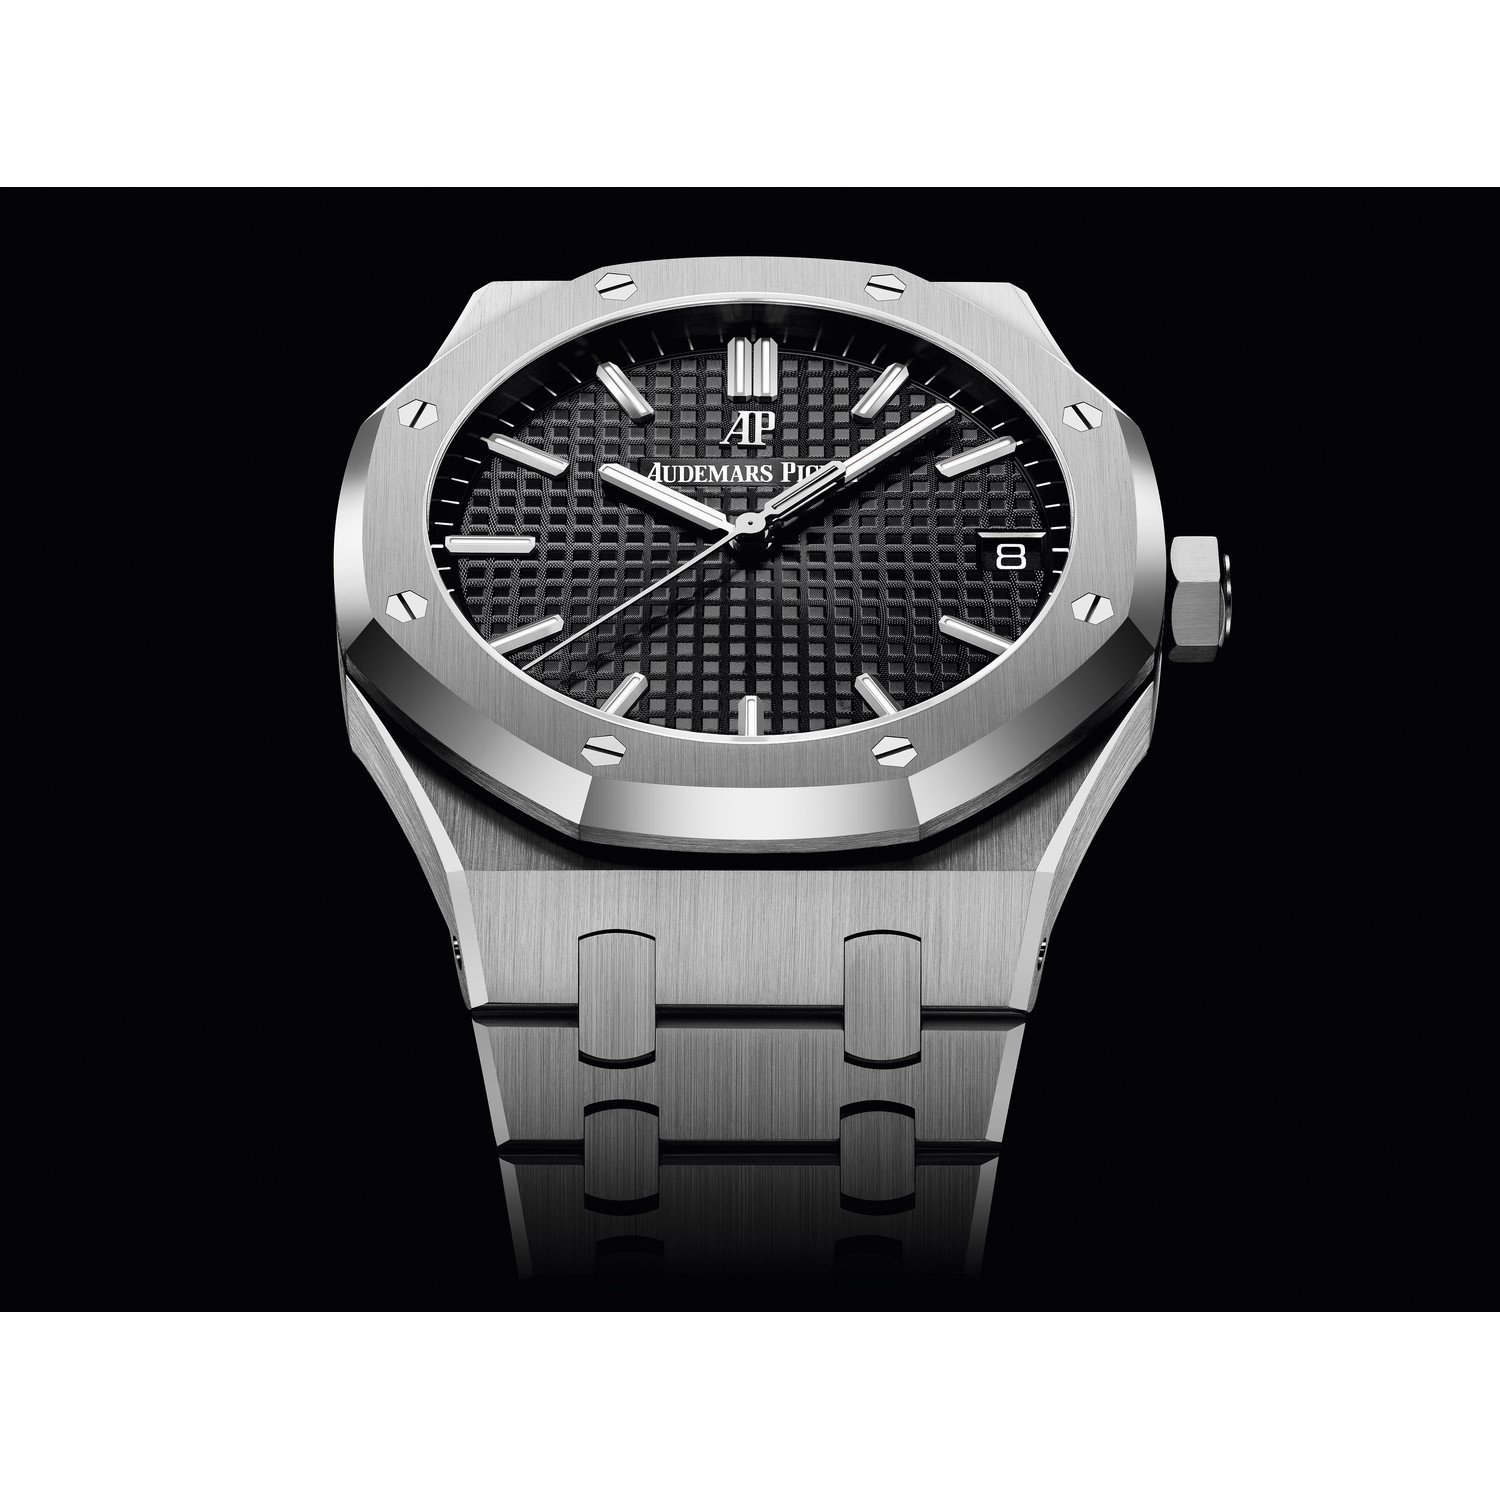 Montre Audemars Piguet Royal Oak Automatique vue 2